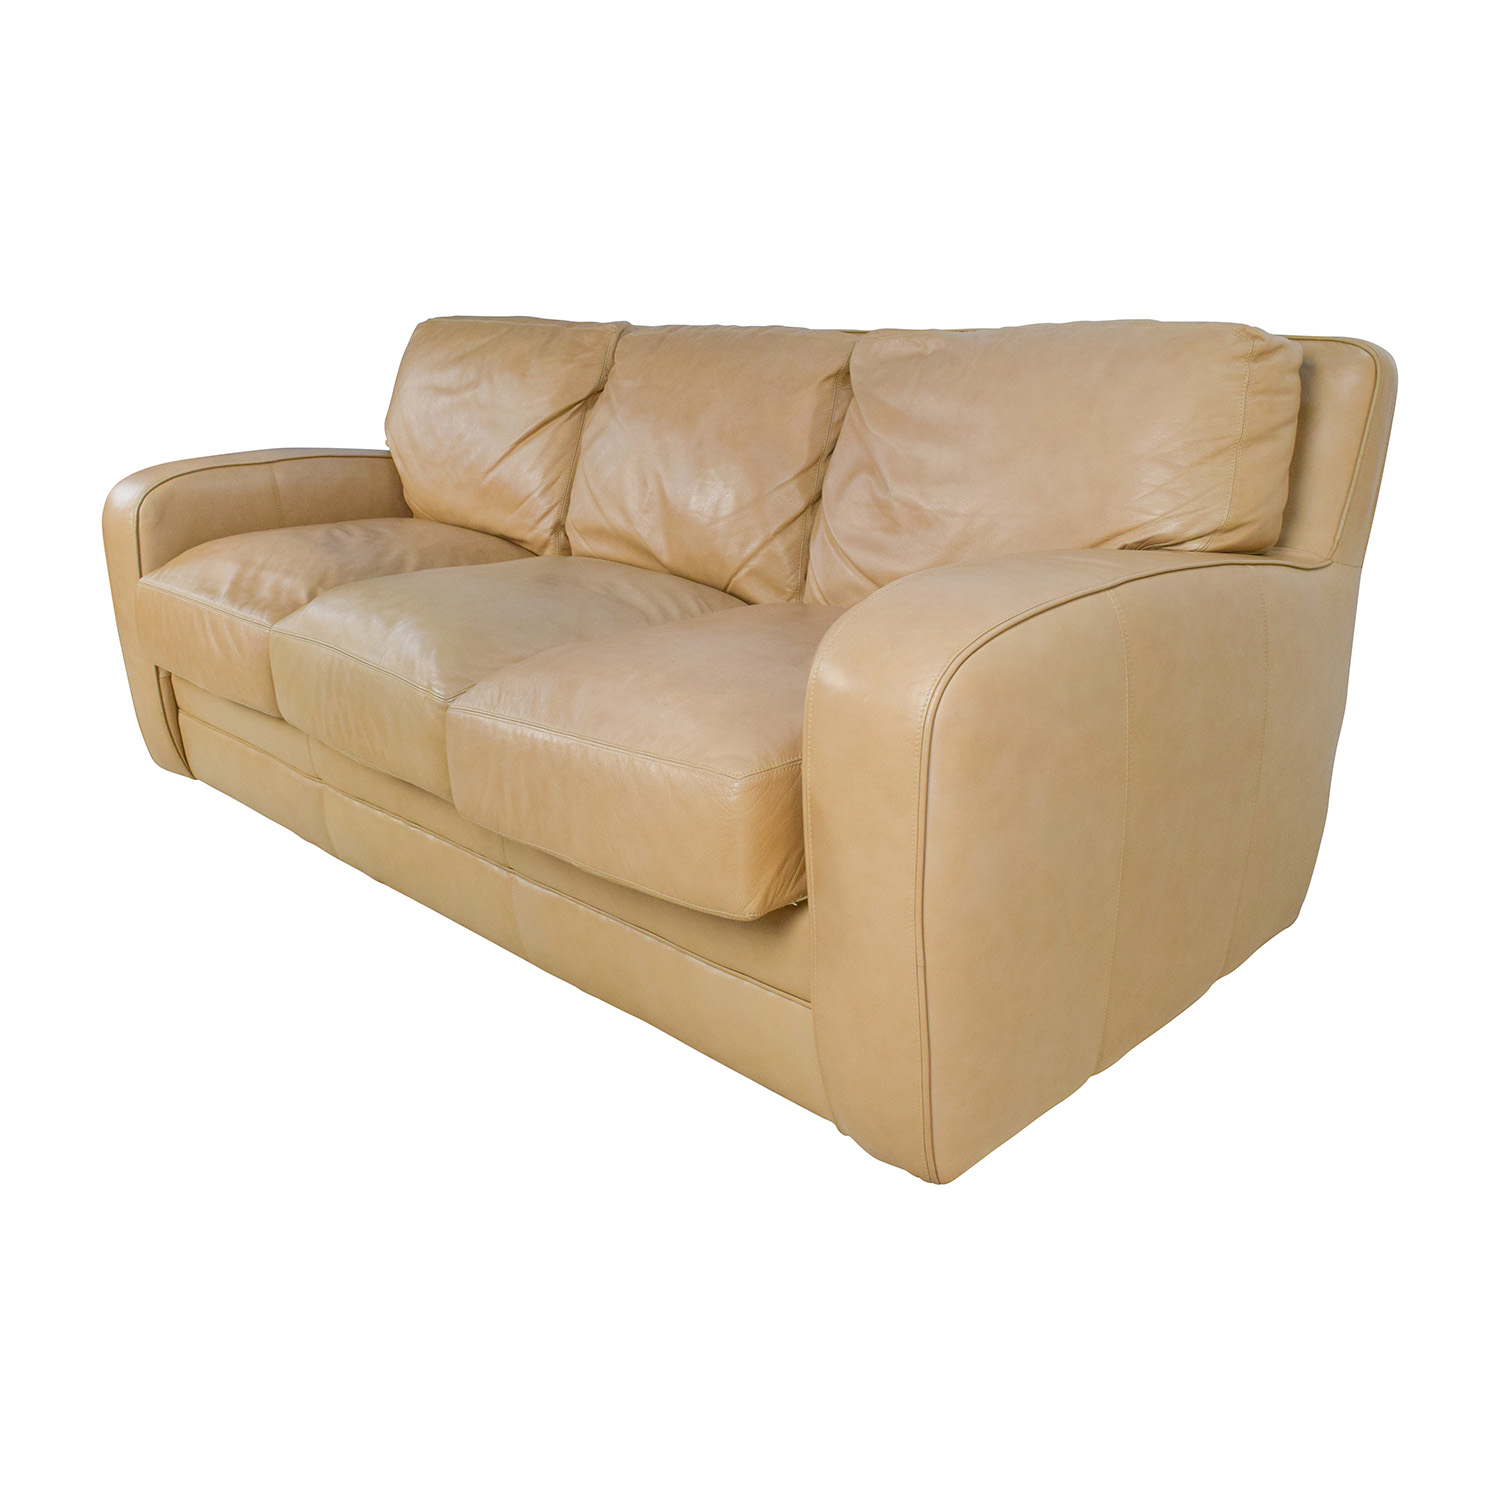 78 Off Beige Three Seat Leather Sofa Sofas